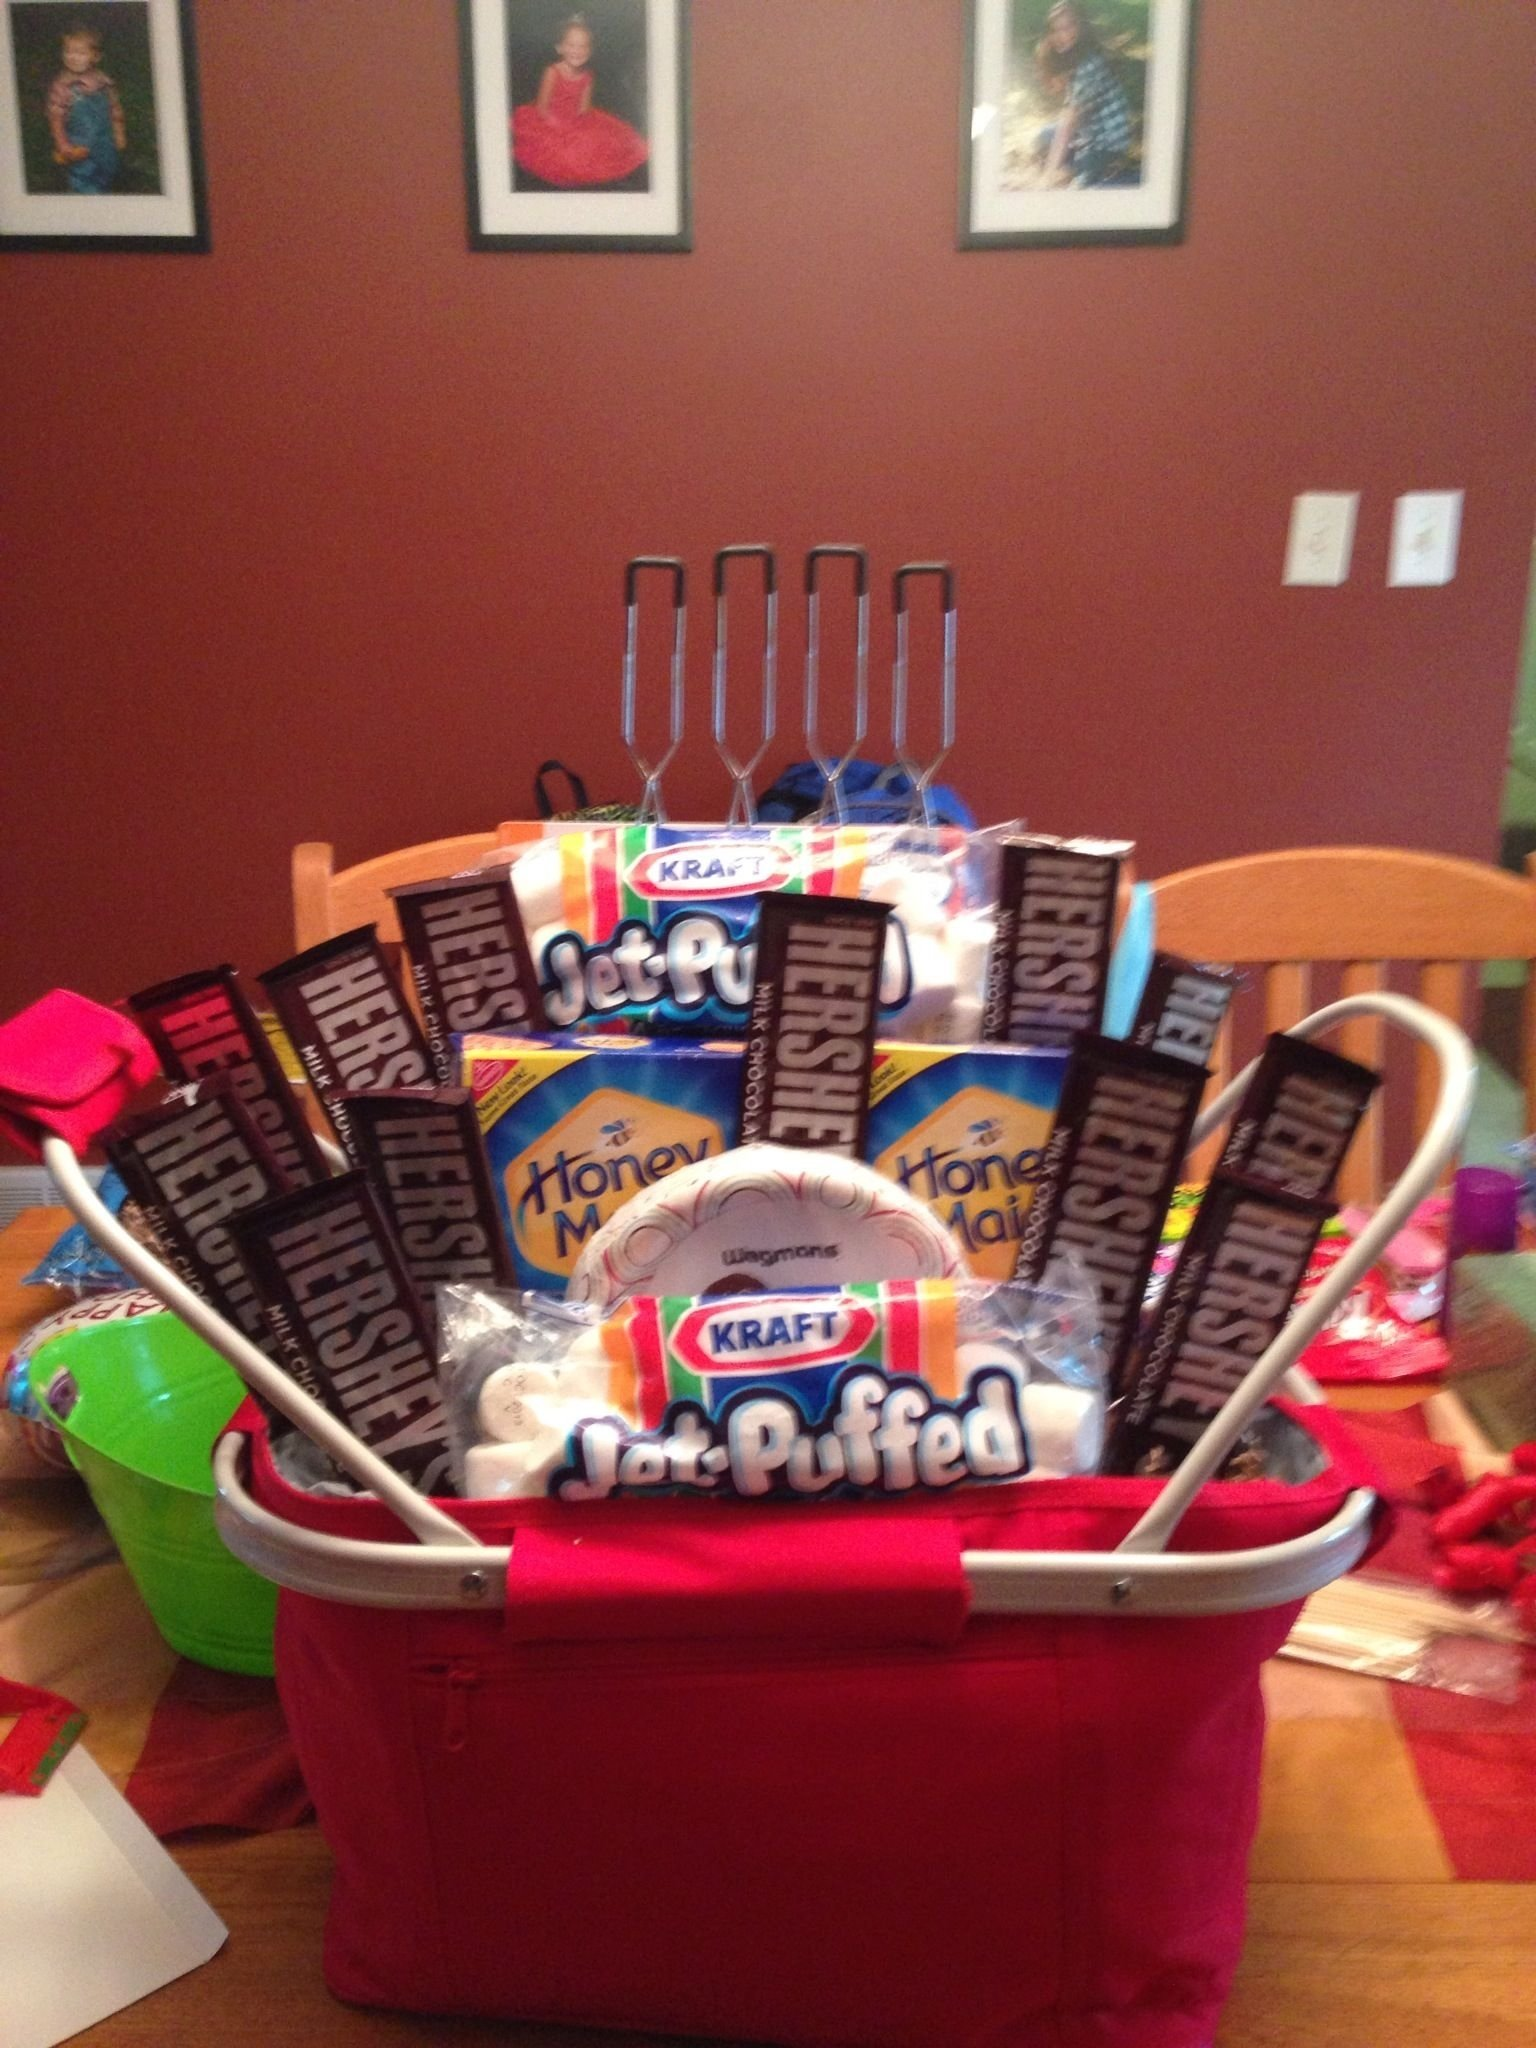 10 Best Ideas For Gift Baskets For Fundraisers campfire basket my baskets pinterest campfires basket ideas 2021